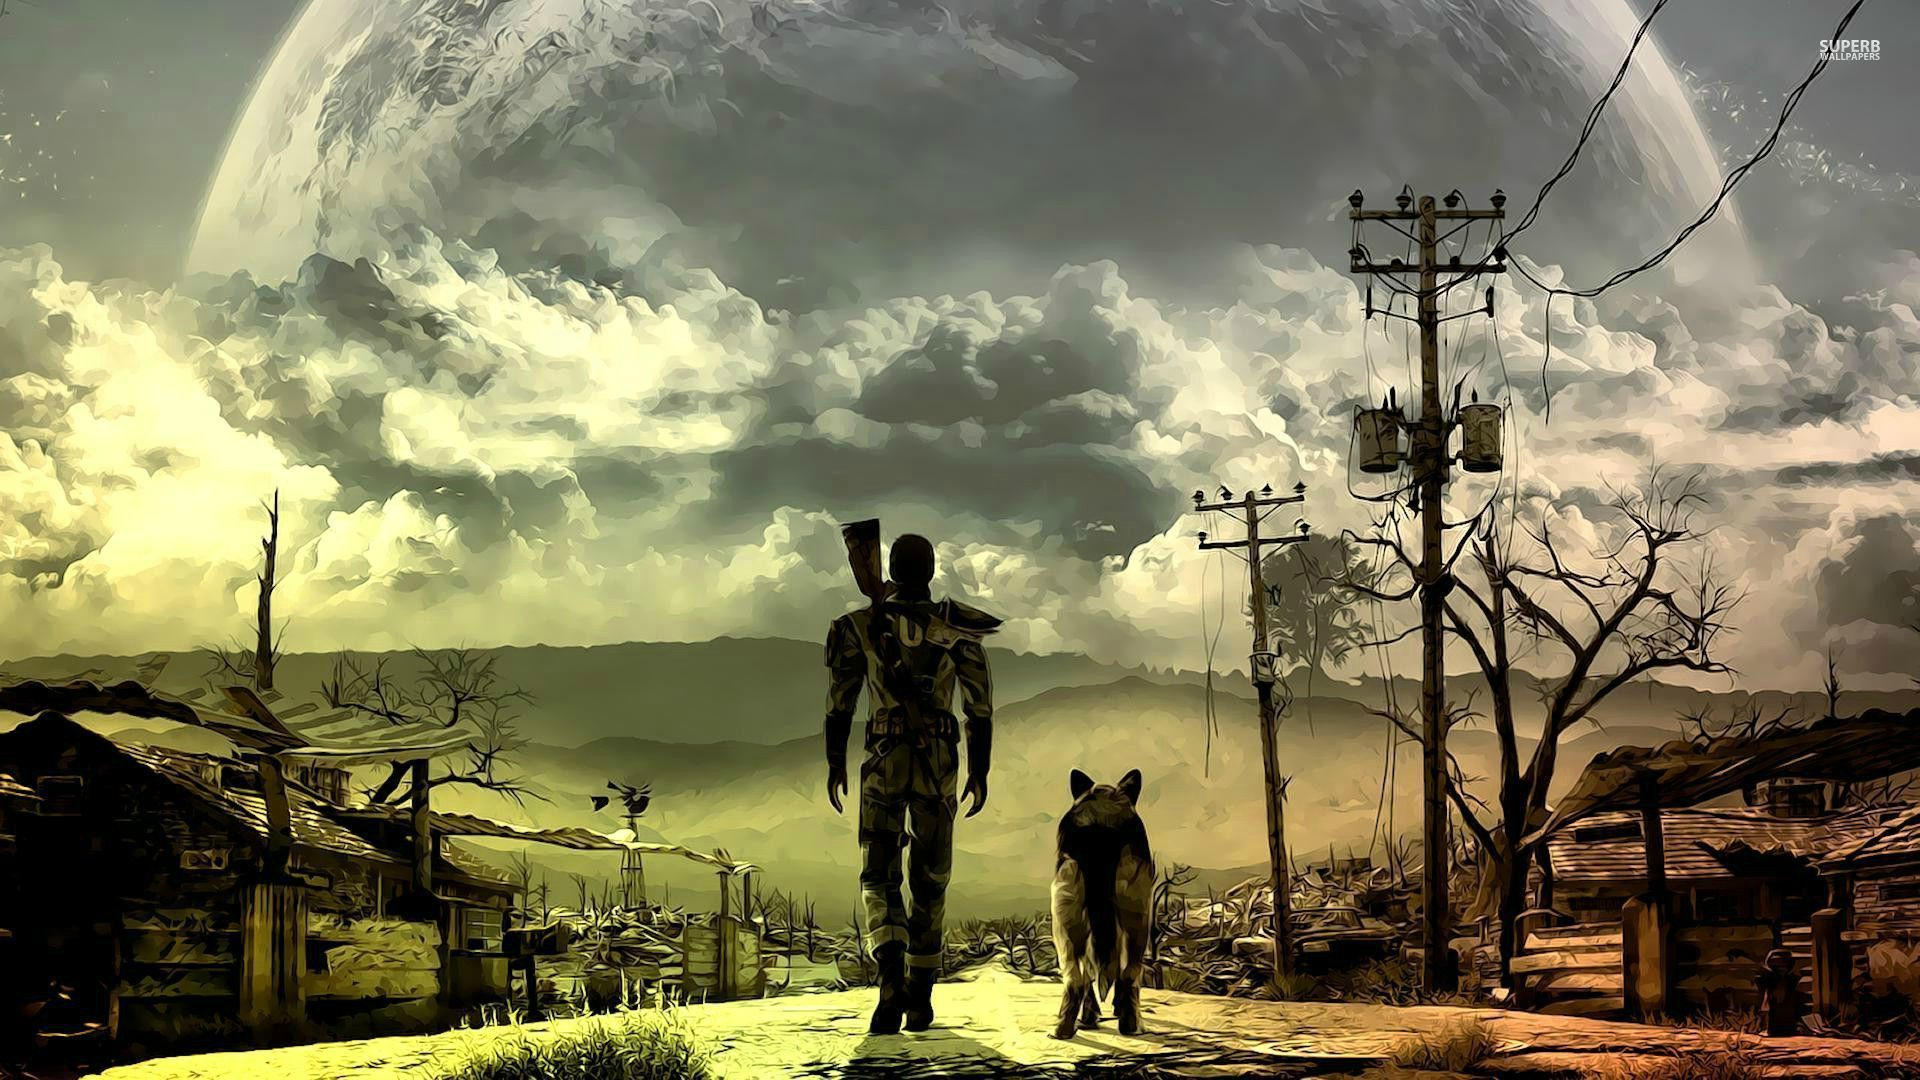 Fallout 4 Being Shown at E3 1920x1080